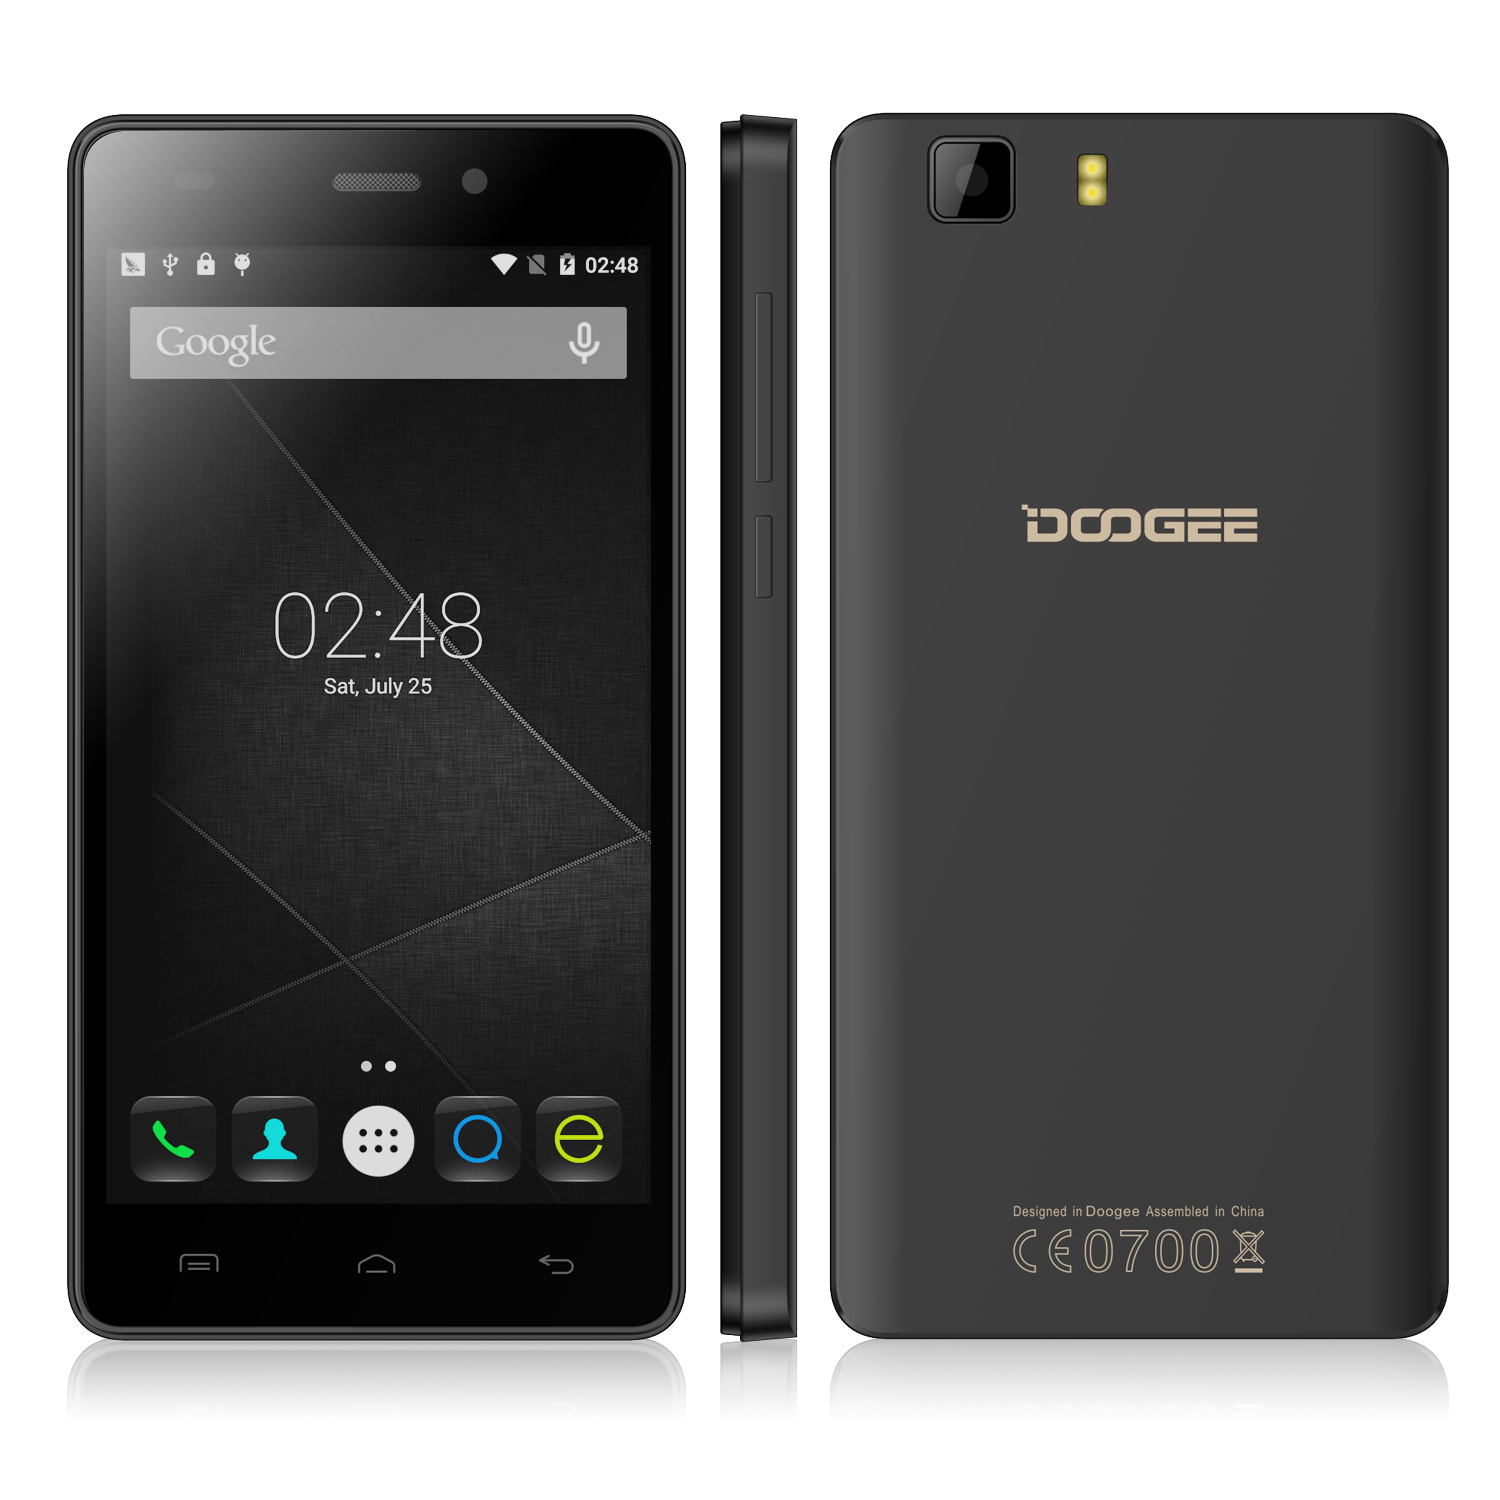 DOOGEE X5 Smartphone 5.0 Inch HD Screen MTK6580 Quad Core Android 5.1 1GB 8GB Black